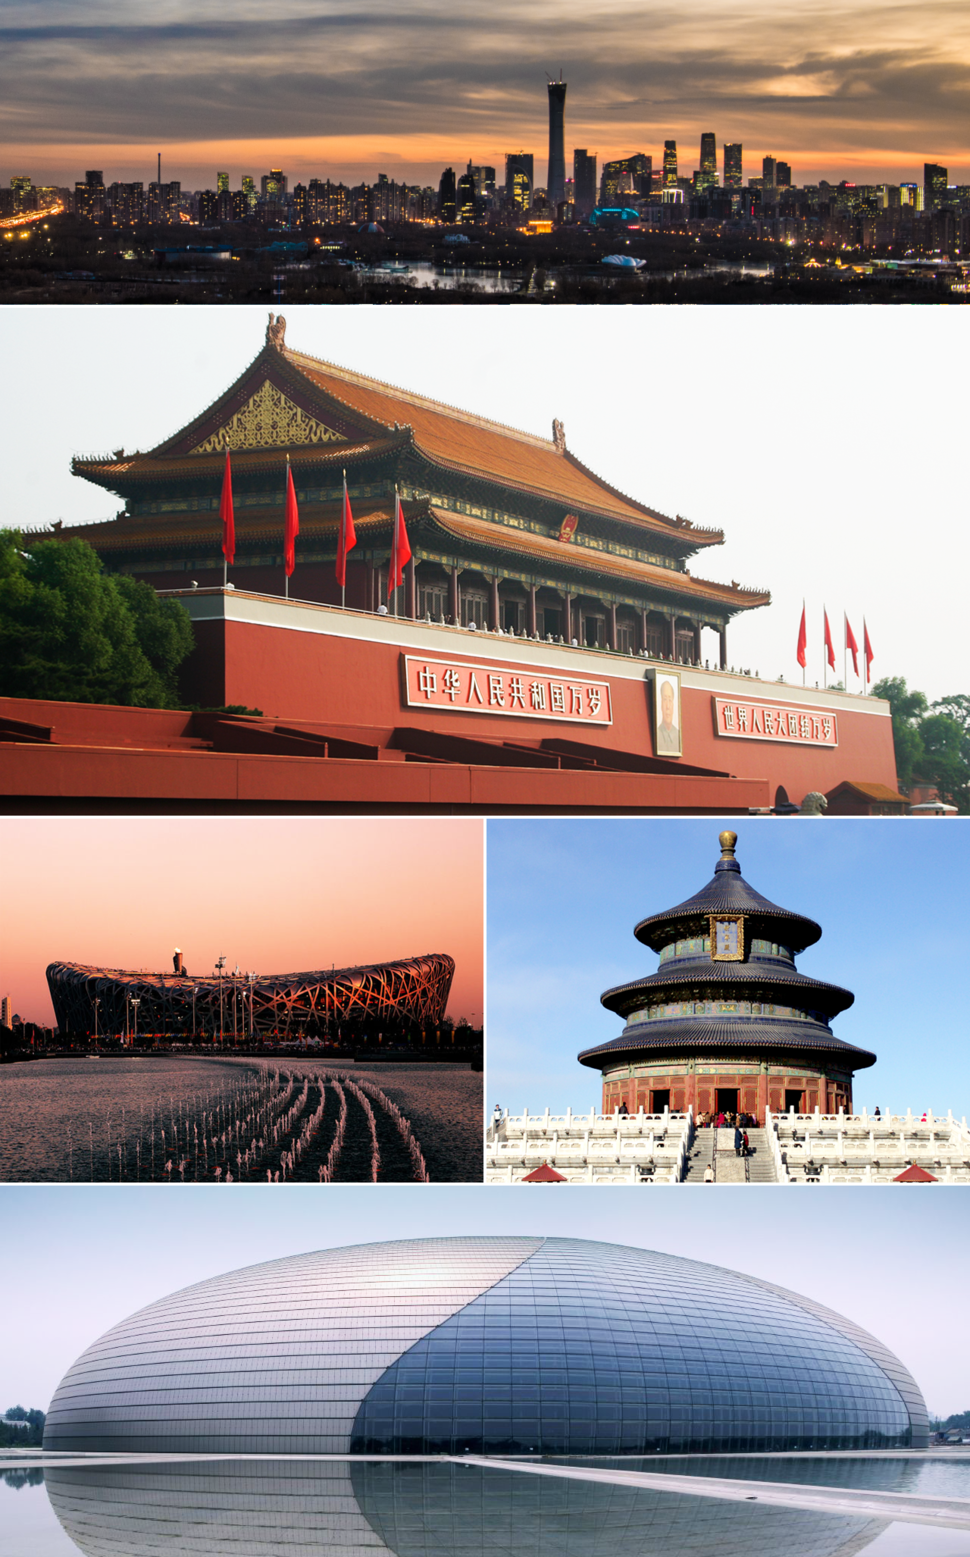 Clockwise from top: Beijing CBD skyline, Tiananmen, Temple of Heaven, National Center for the Performing Arts, and Beijing National Stadium